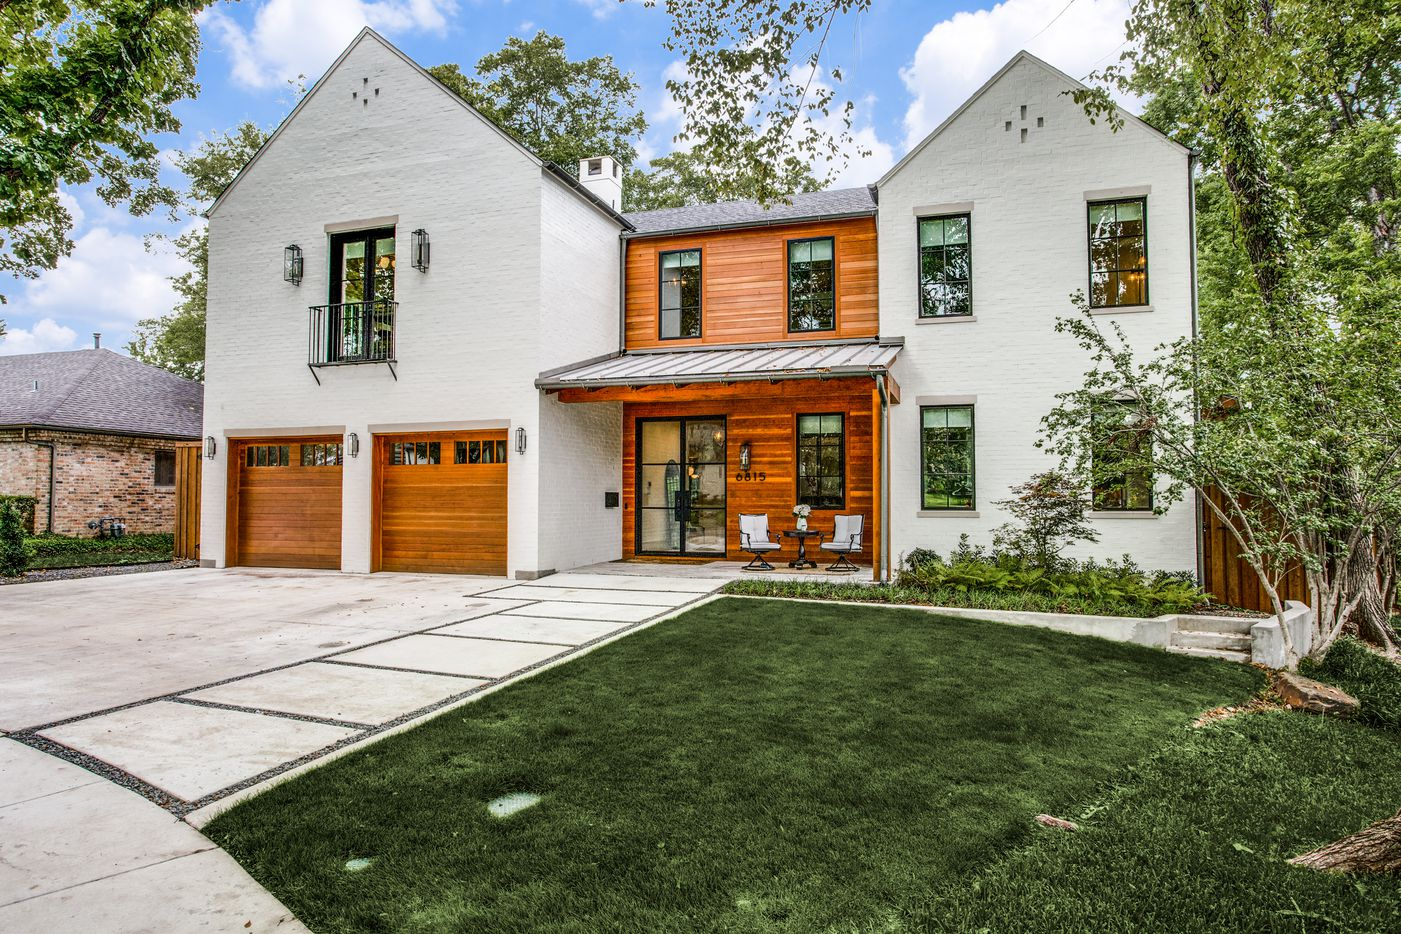 Exterior of 6815 Carolyncrest Drive in Lakewood.